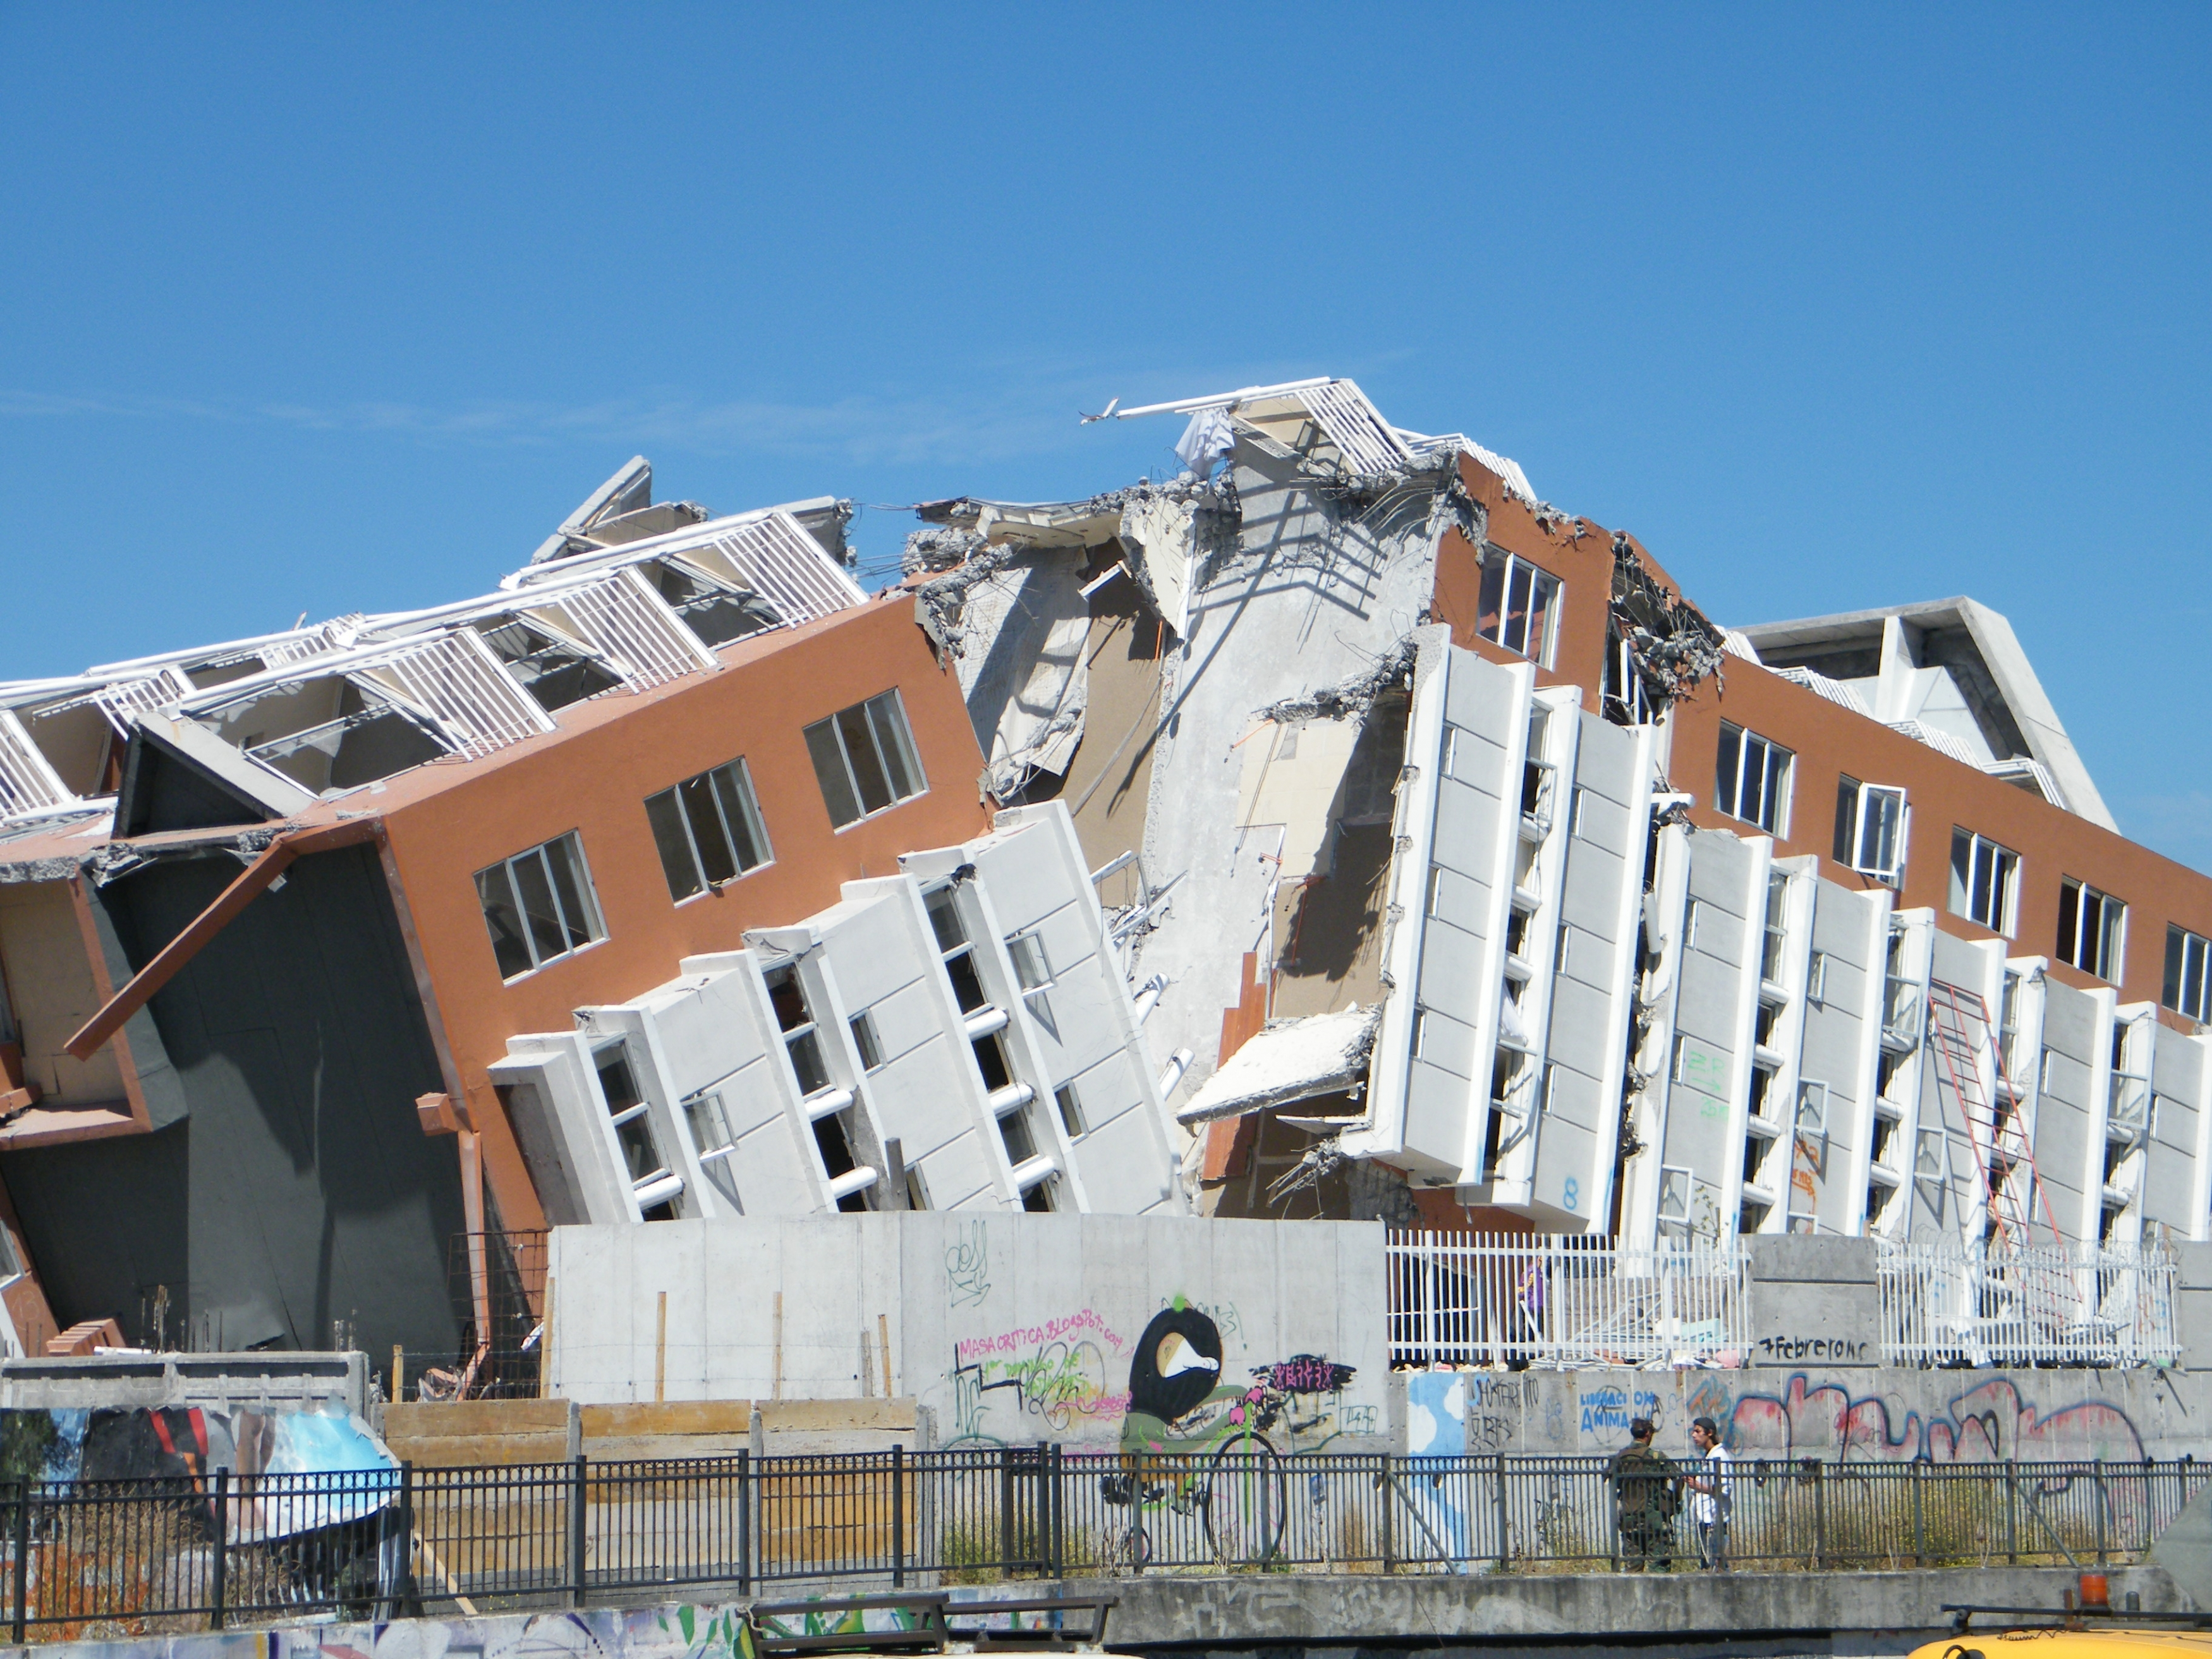 File:Terremoto no Chile 2010.JPG - Wikimedia Commons